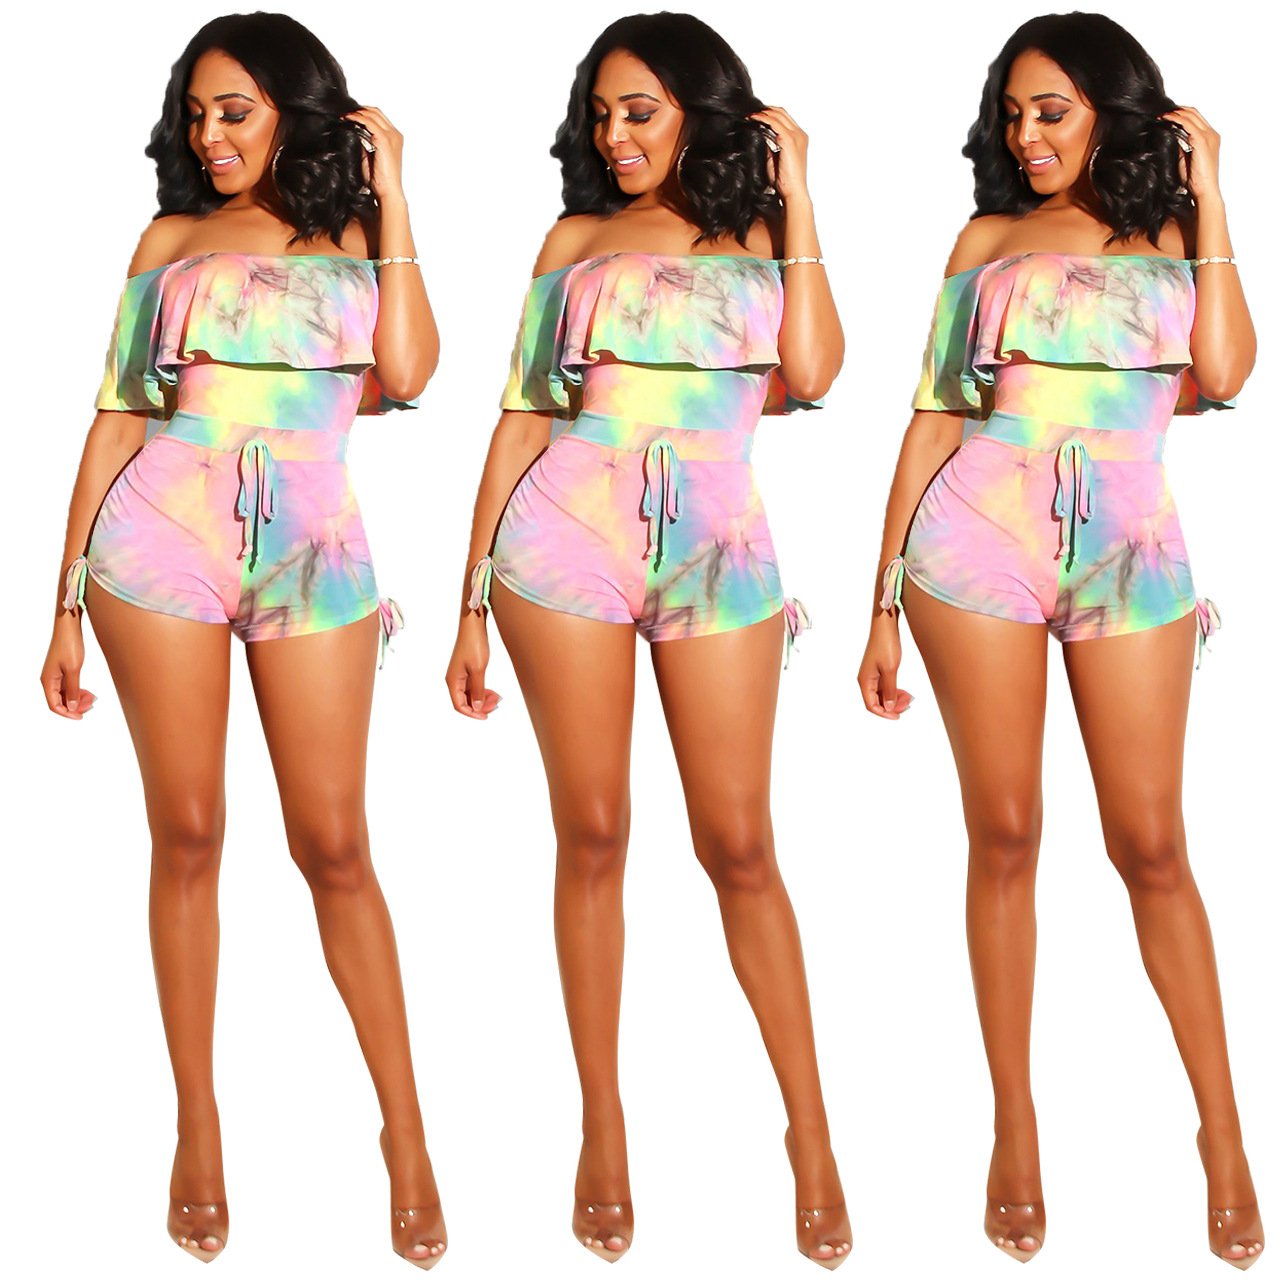 Q227 Europe And America Hot Selling Sexy WOMEN'S Dress Nightclub Gradient Ink Horizontal Neck Flounced Tight-Style Onesie